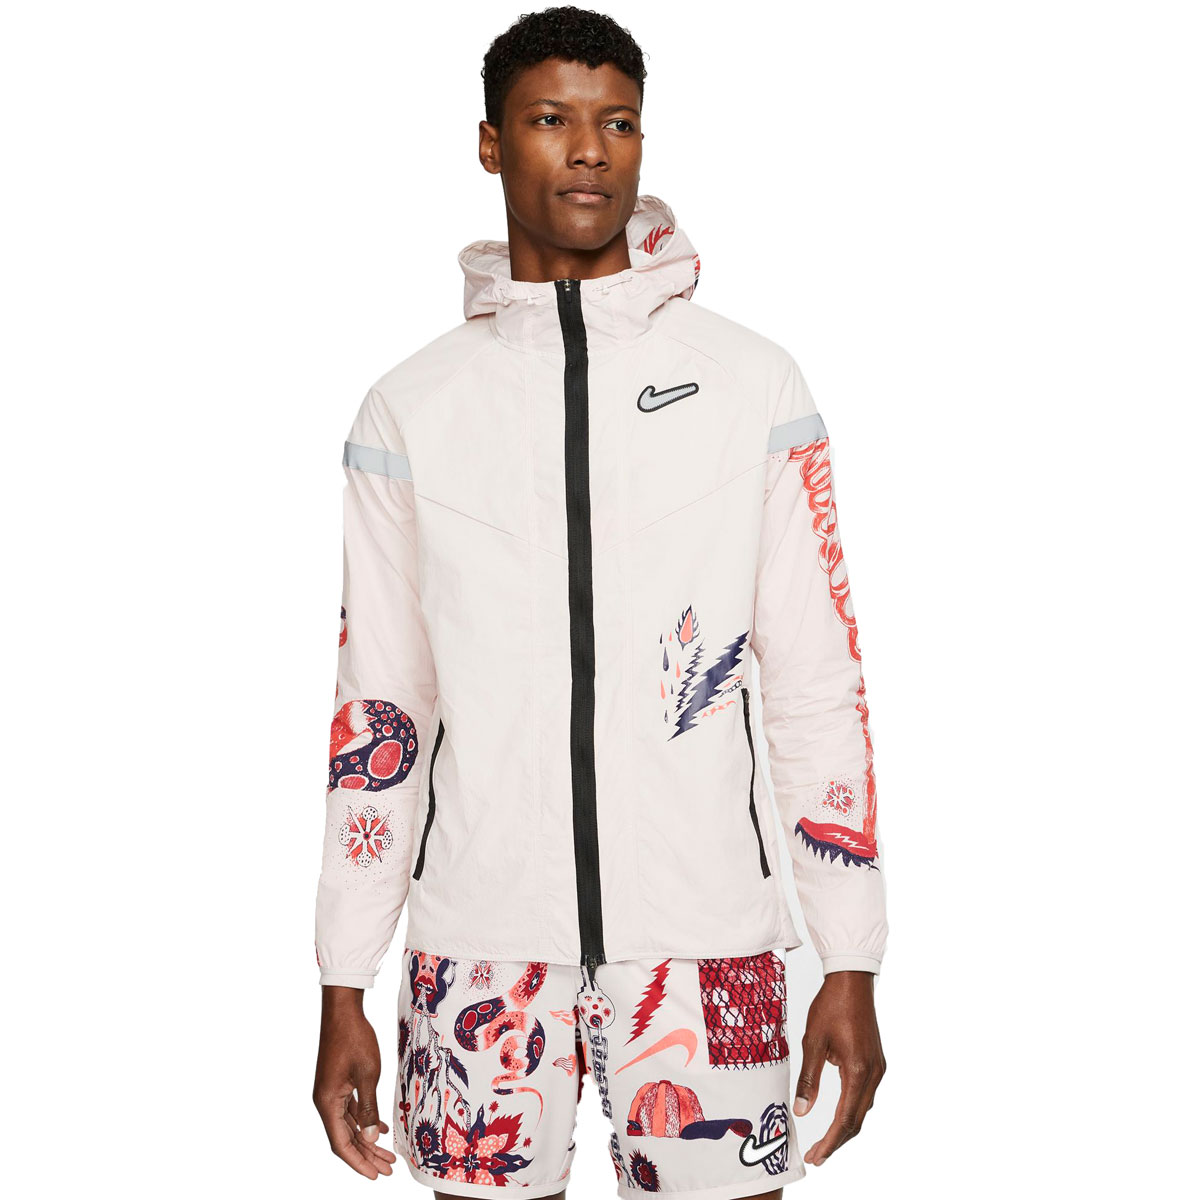 Men's Nike Windrunner Wild Run Running Jacket - Color: Barely Rose/Reflective Silver - Size: S, Barely Rose/Reflective Silver, large, image 1